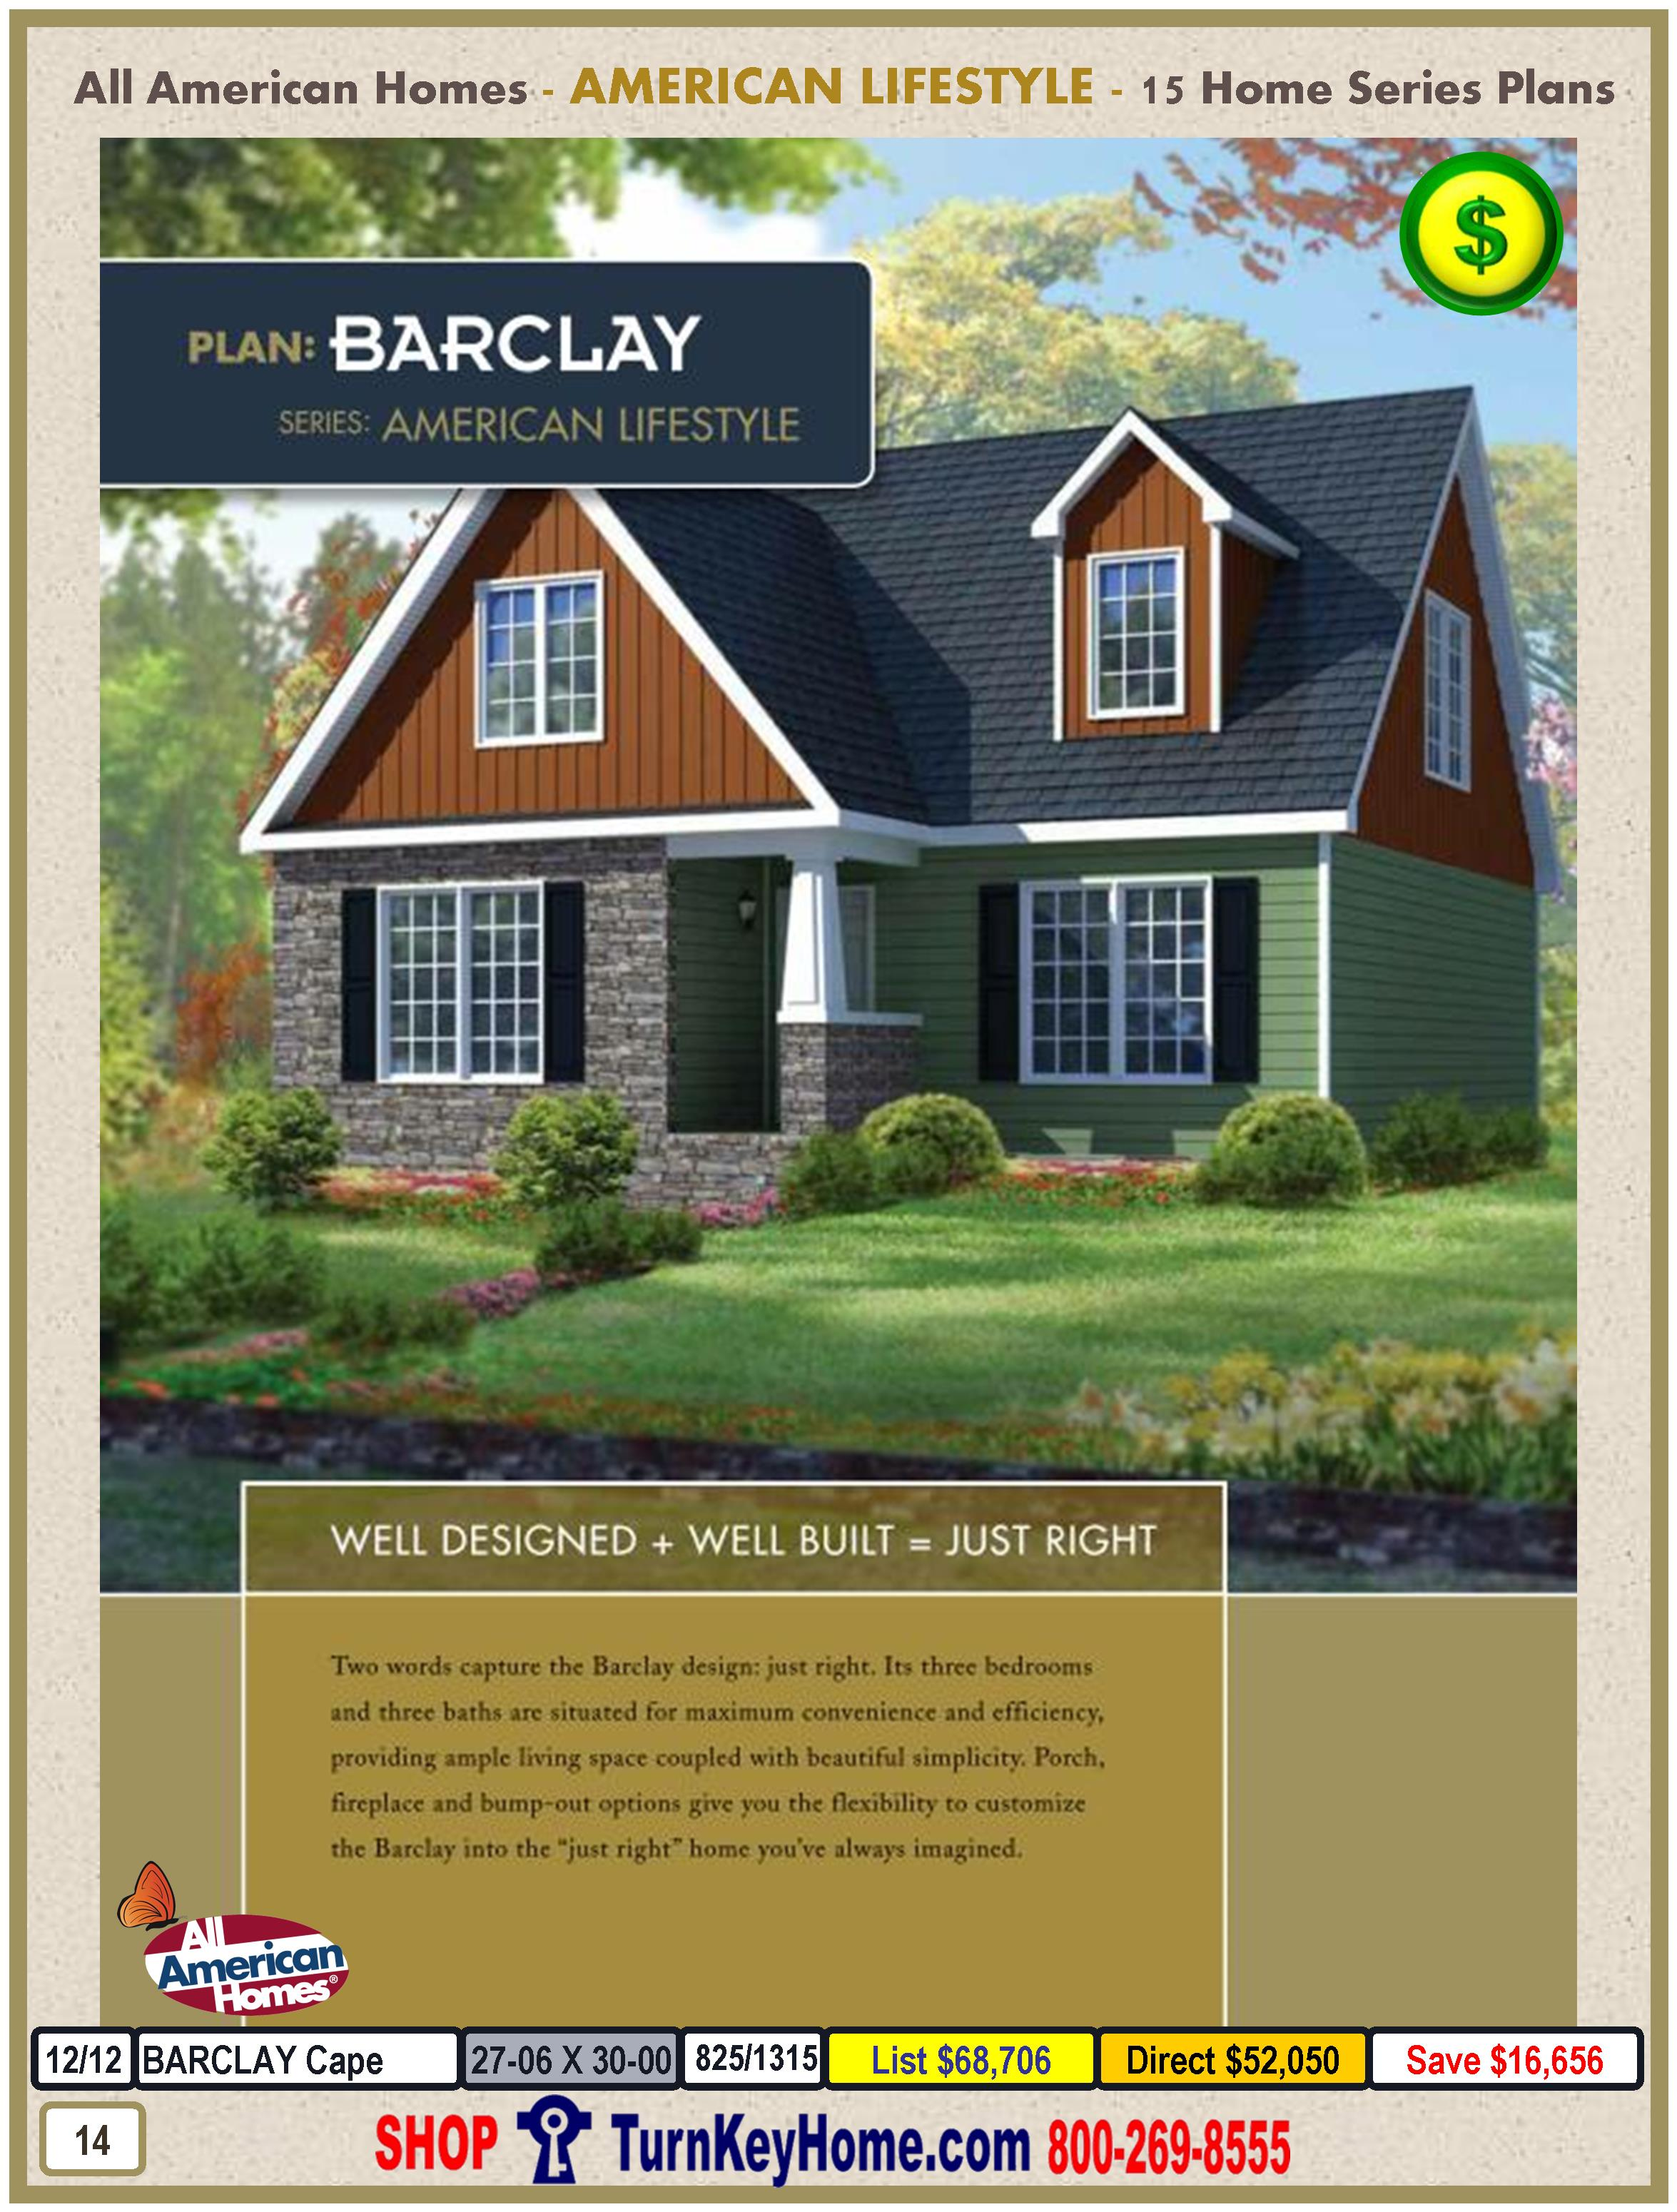 Amazing Modular Homes Plans From All American Homes American Lifestyles   Barclay  Home Design